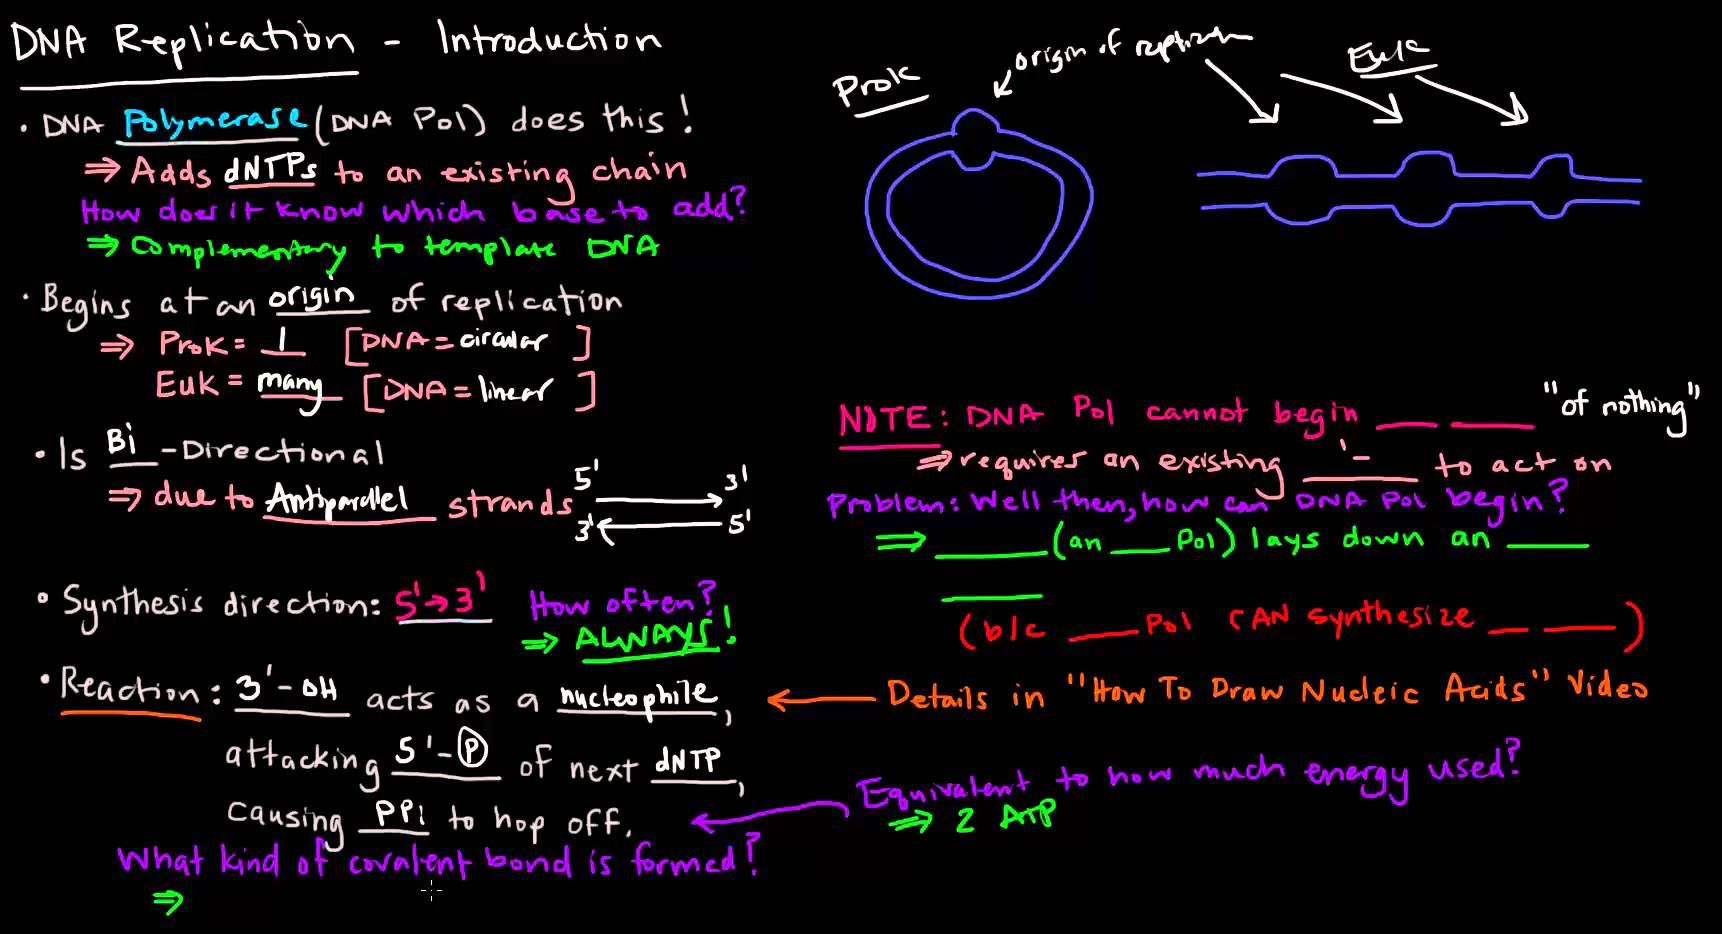 DNA Replication (Part 1 of 3) Introduction Fun science